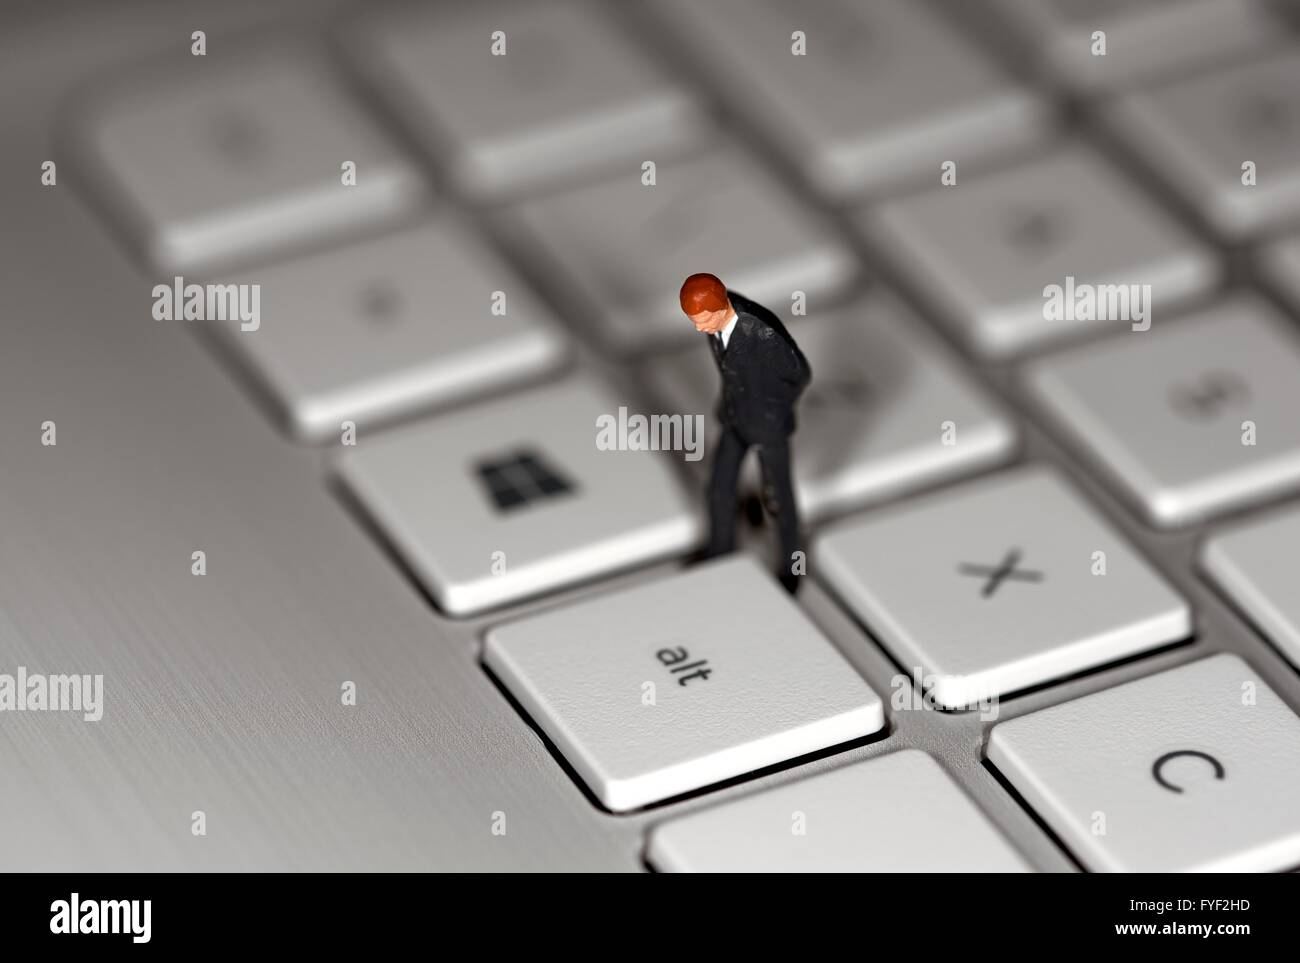 A miniature figurine business man standing on a laptop keyboard - Stock Image